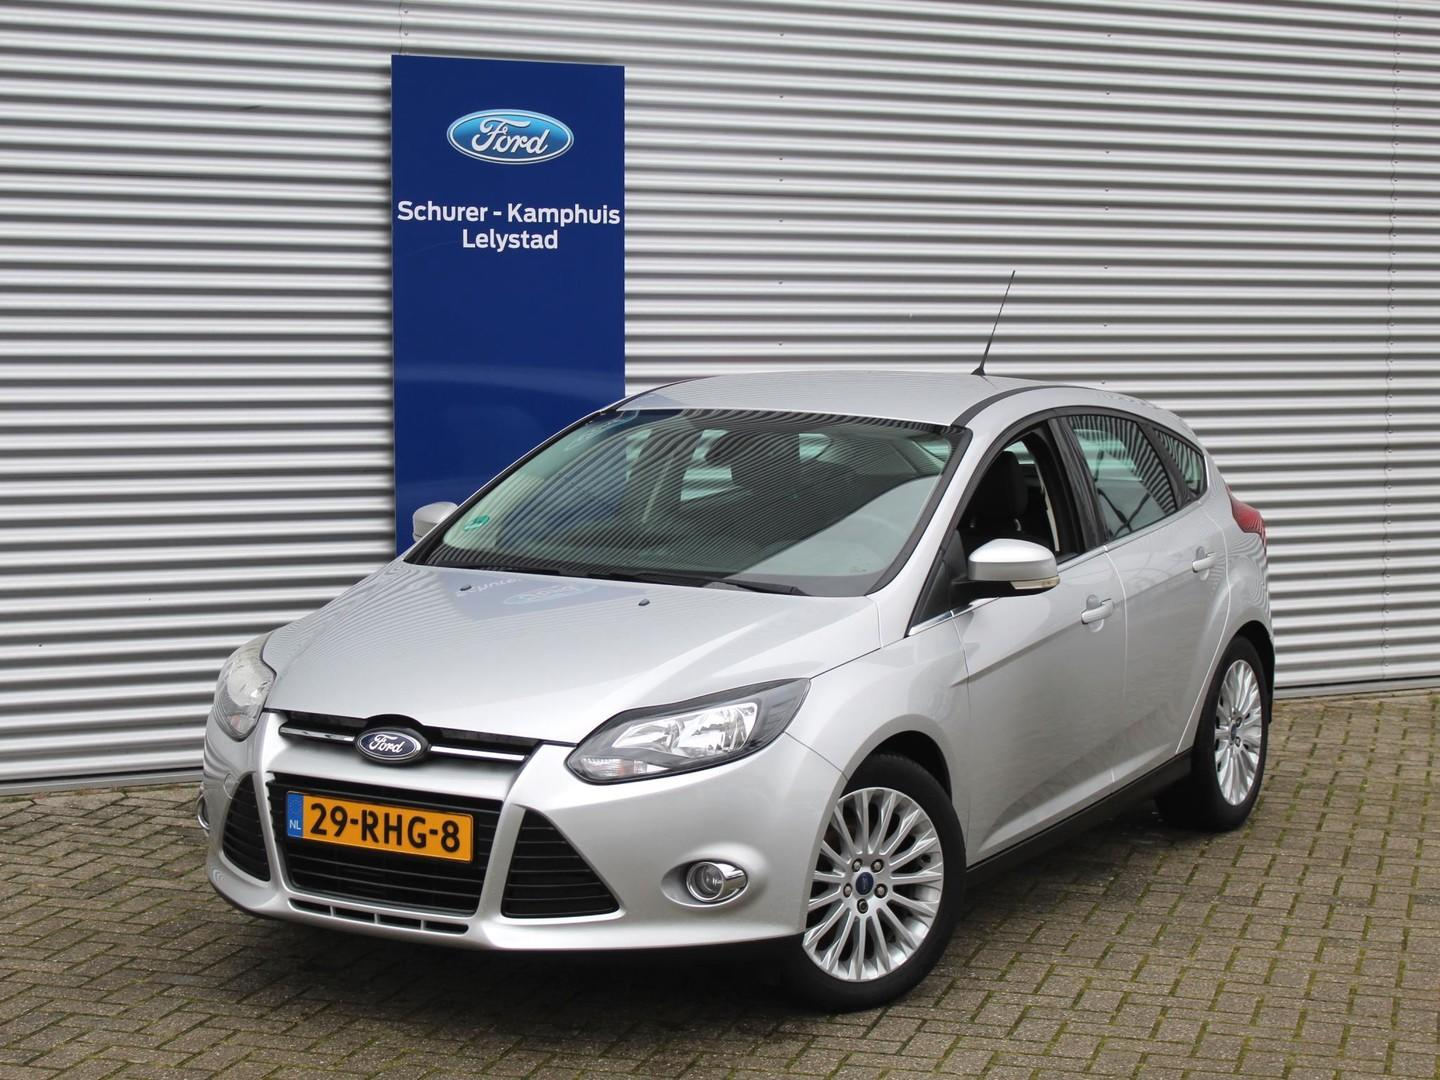 Ford Focus 1.6 ecoboost (150pk) first edition trekhaak